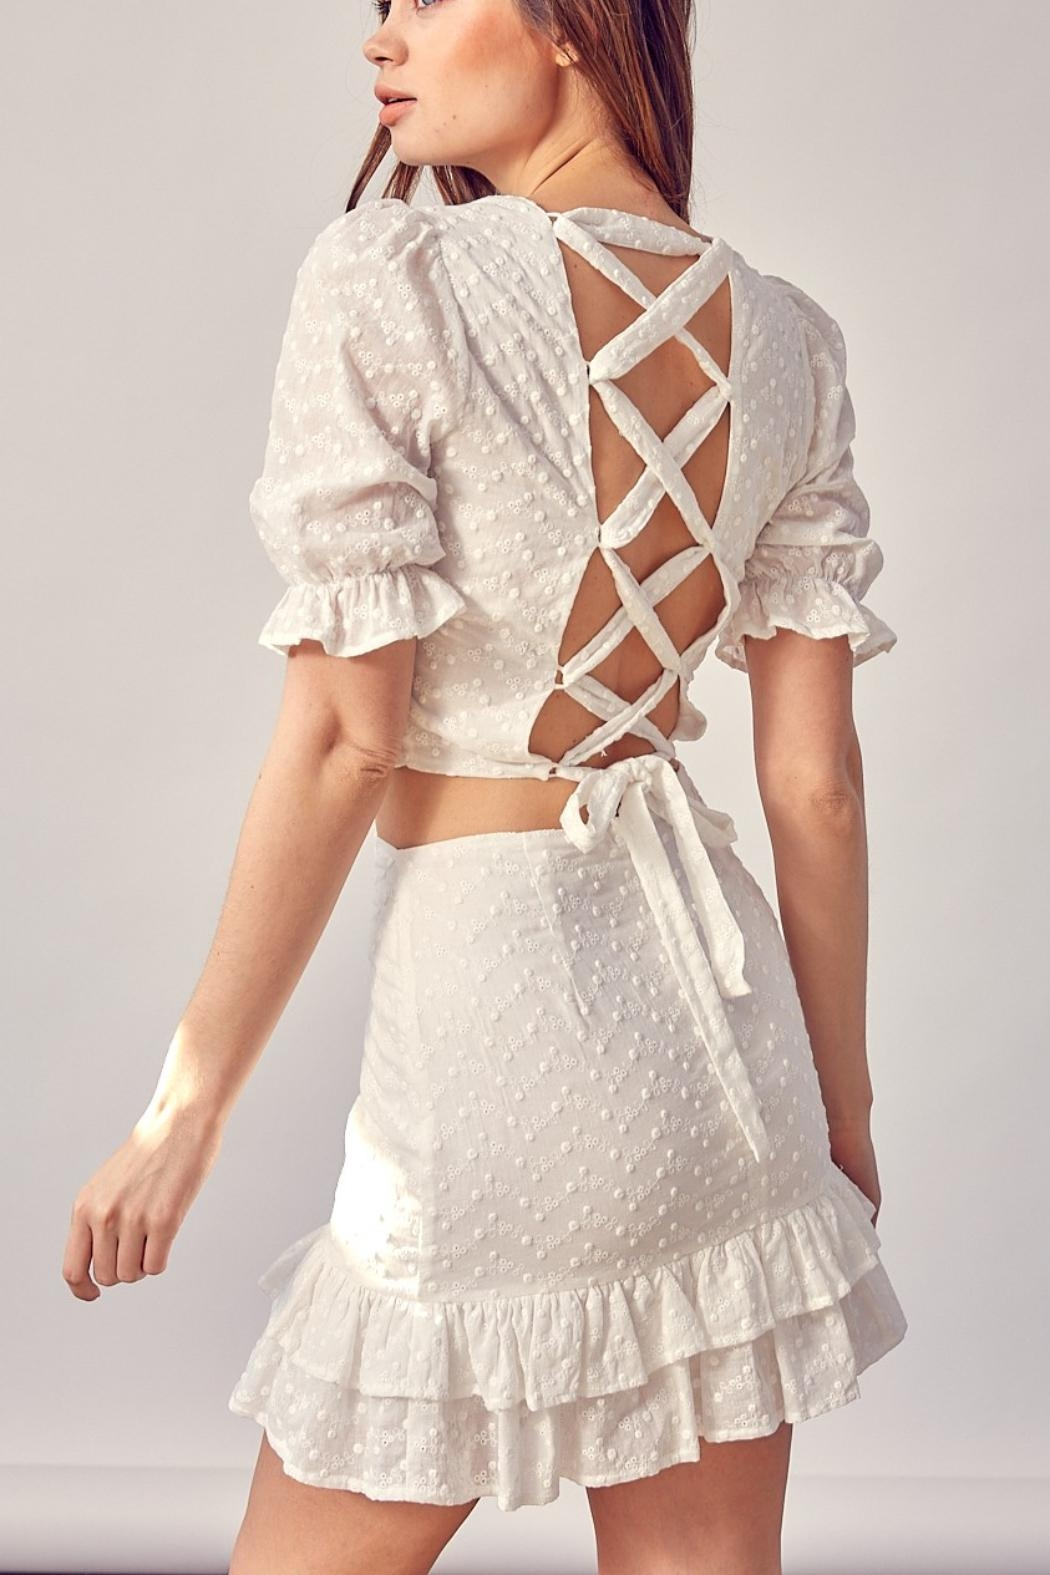 Pretty Little Things Backless Lace Top - Main Image